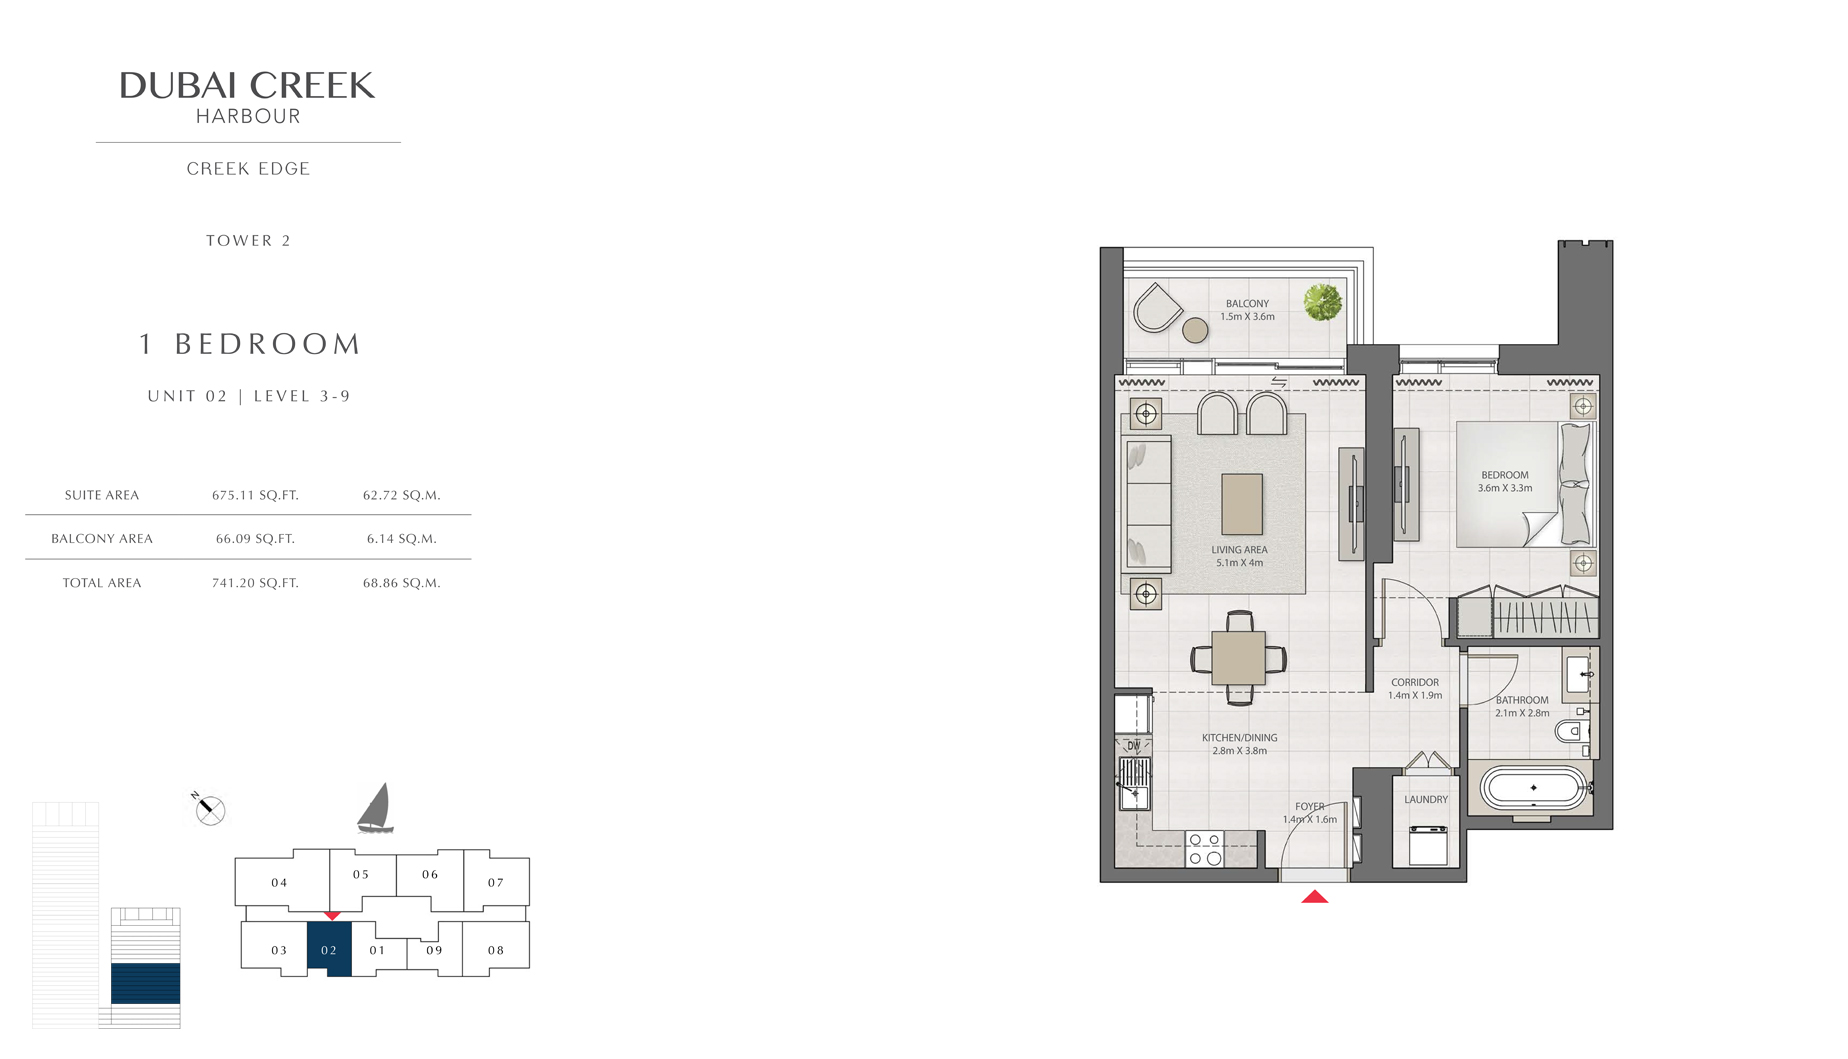 1 Bedroom Tower 2 Unit 02 Level 3-9 Size 741 sq.ft